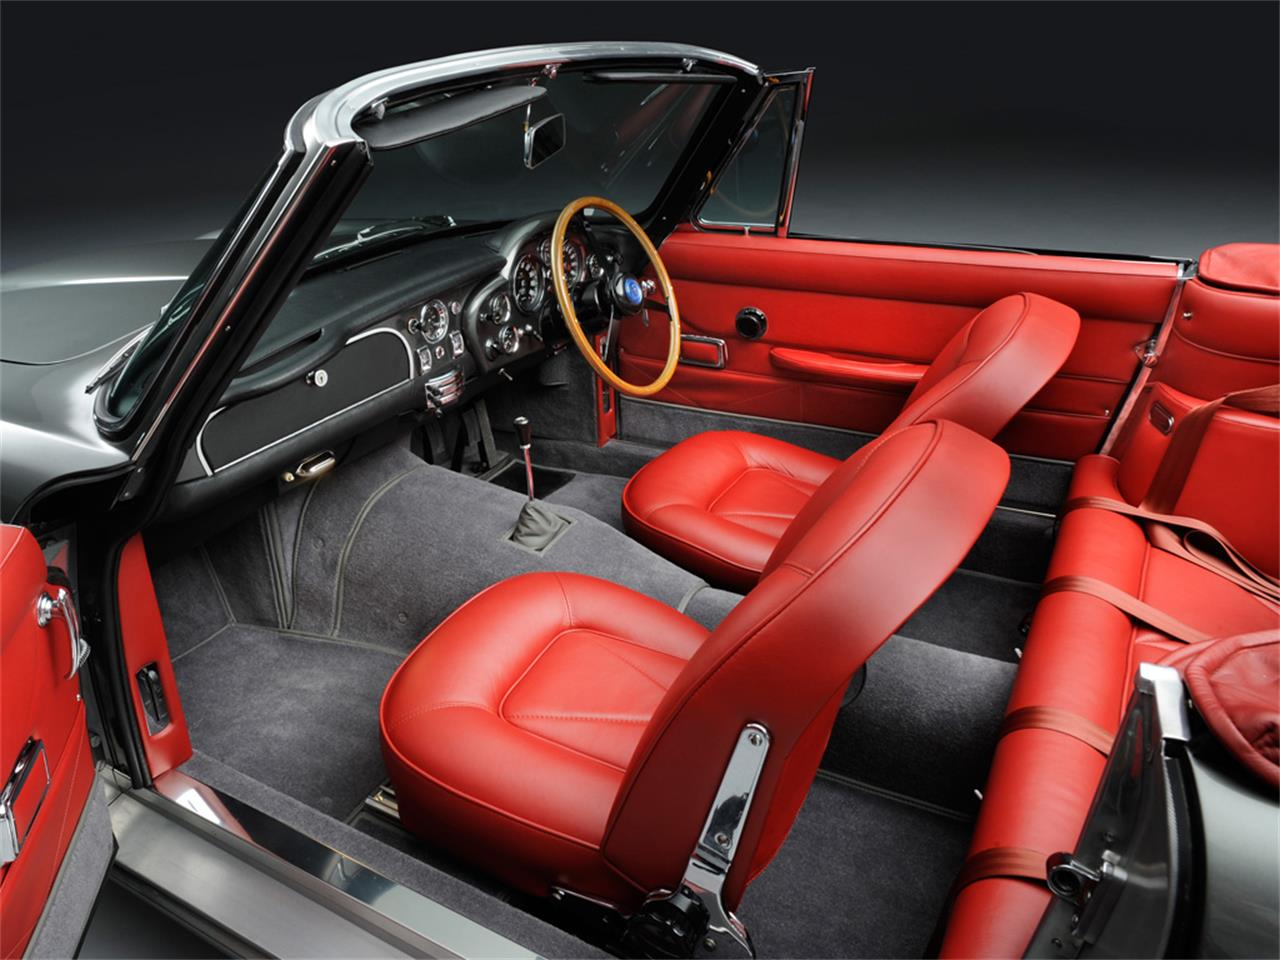 Large Picture of Classic 1967 DB6 MKI Vantage Volante Auction Vehicle Offered by JD Classics LTD - IVCB